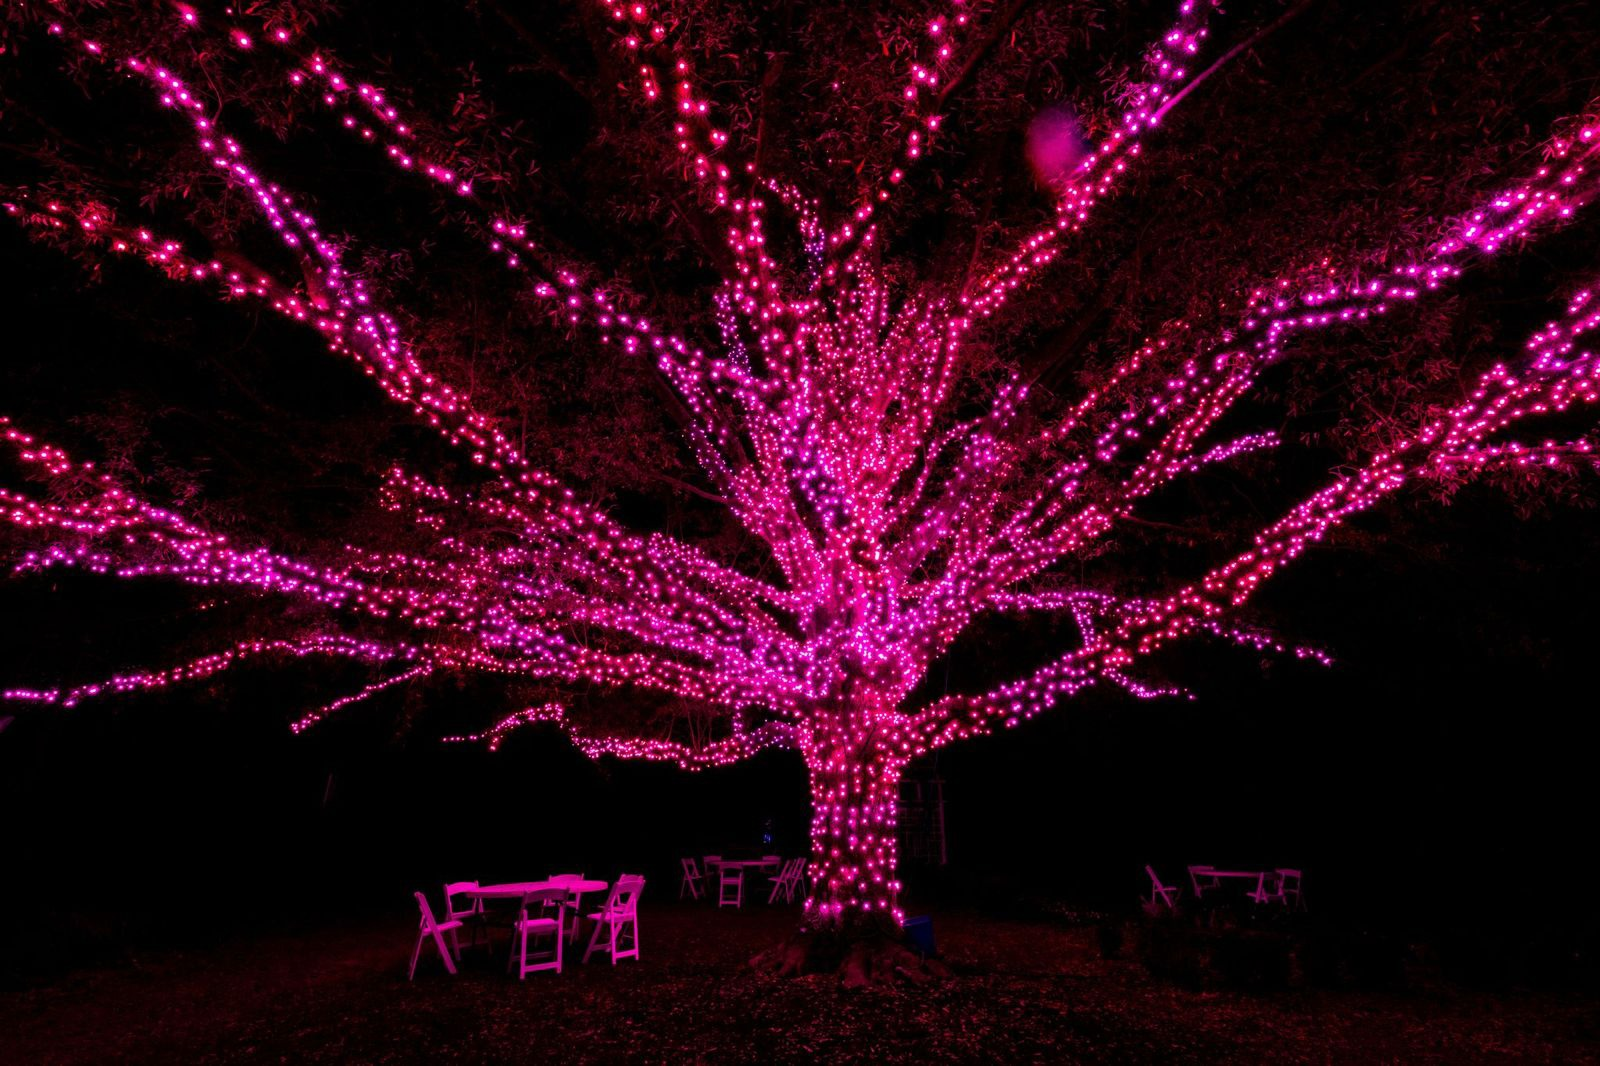 The Darlington Oak wrapped in pink lights.